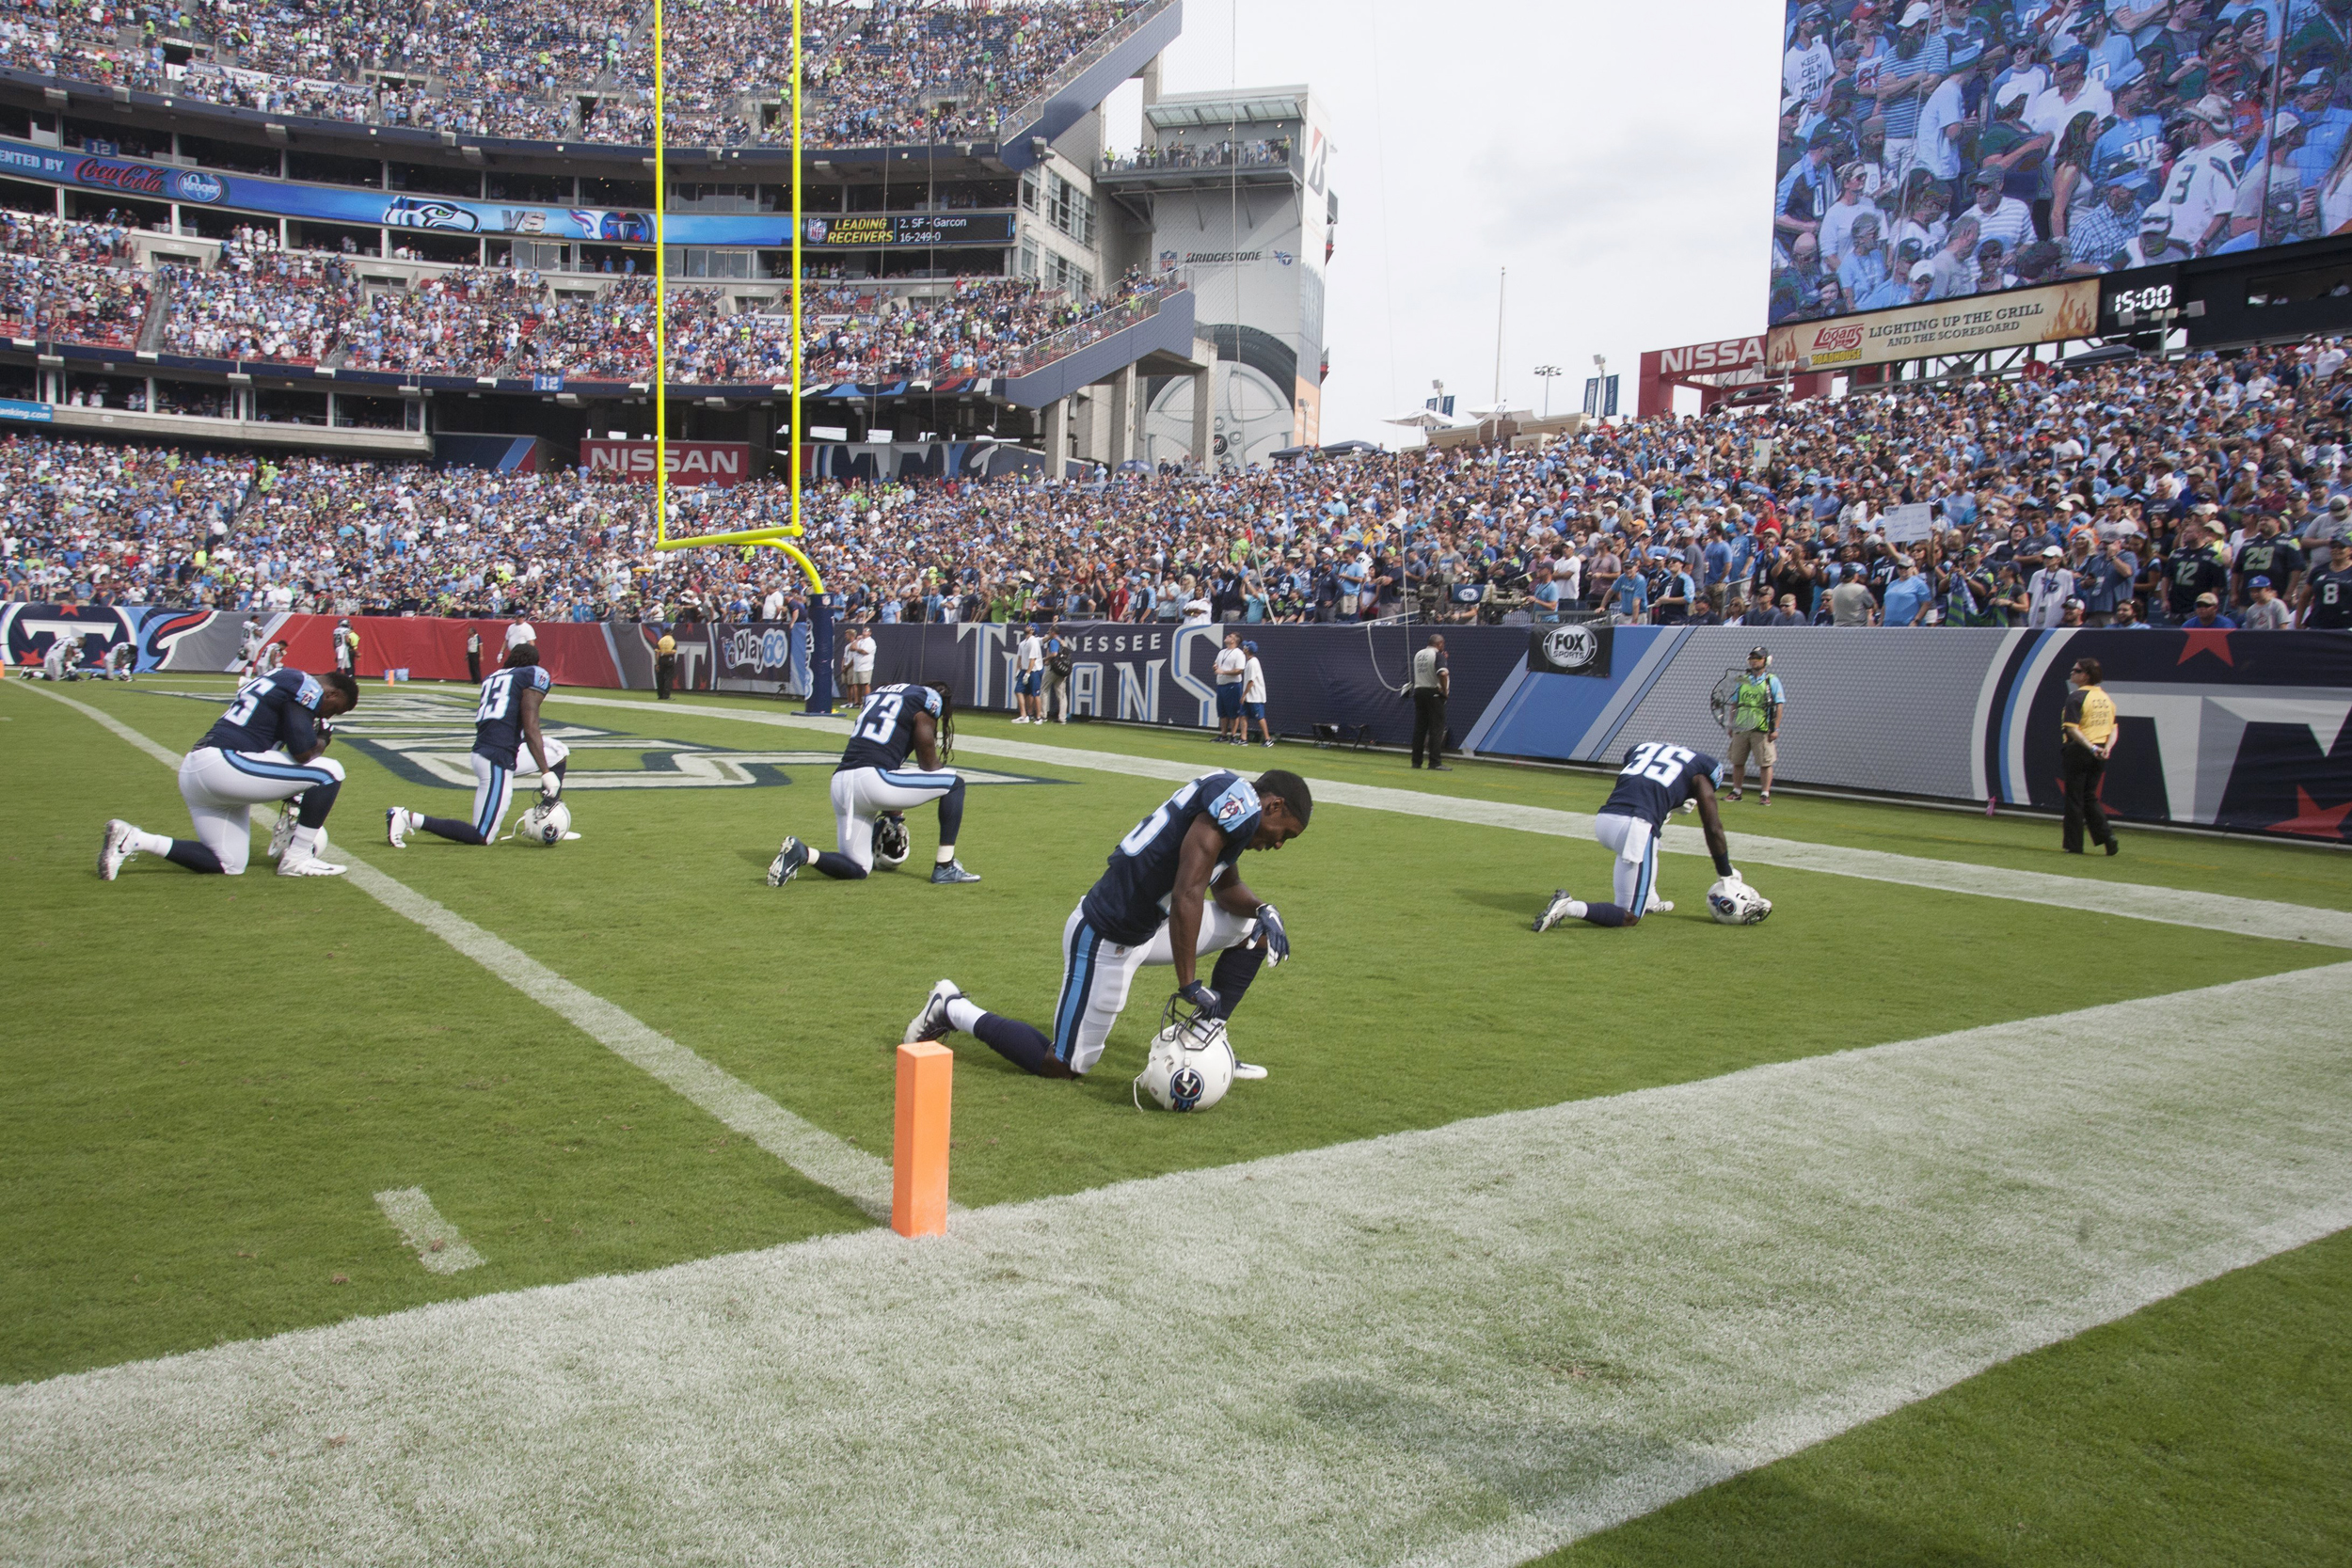 Image: Members of the Tennessee Titans kneel at the end zone